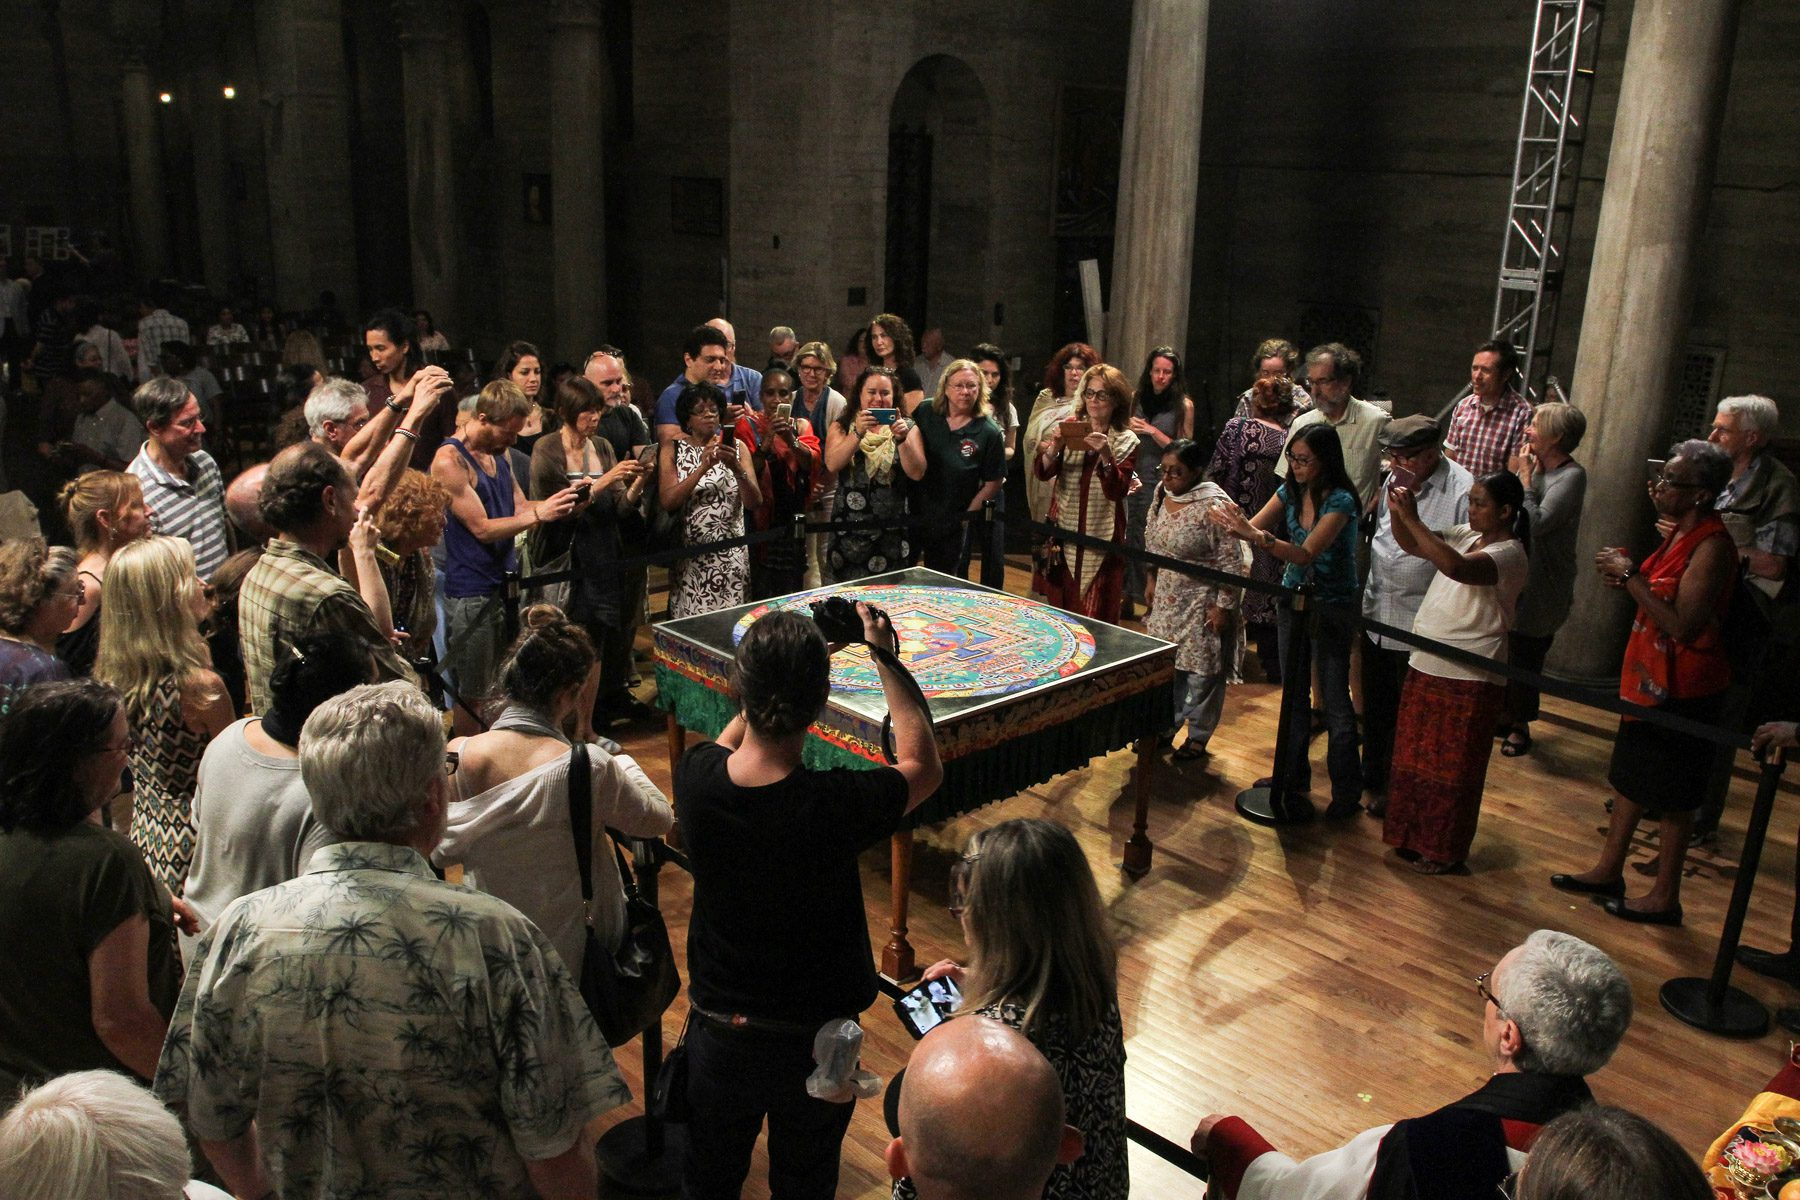 Audience photographs the Mandala of Compassion